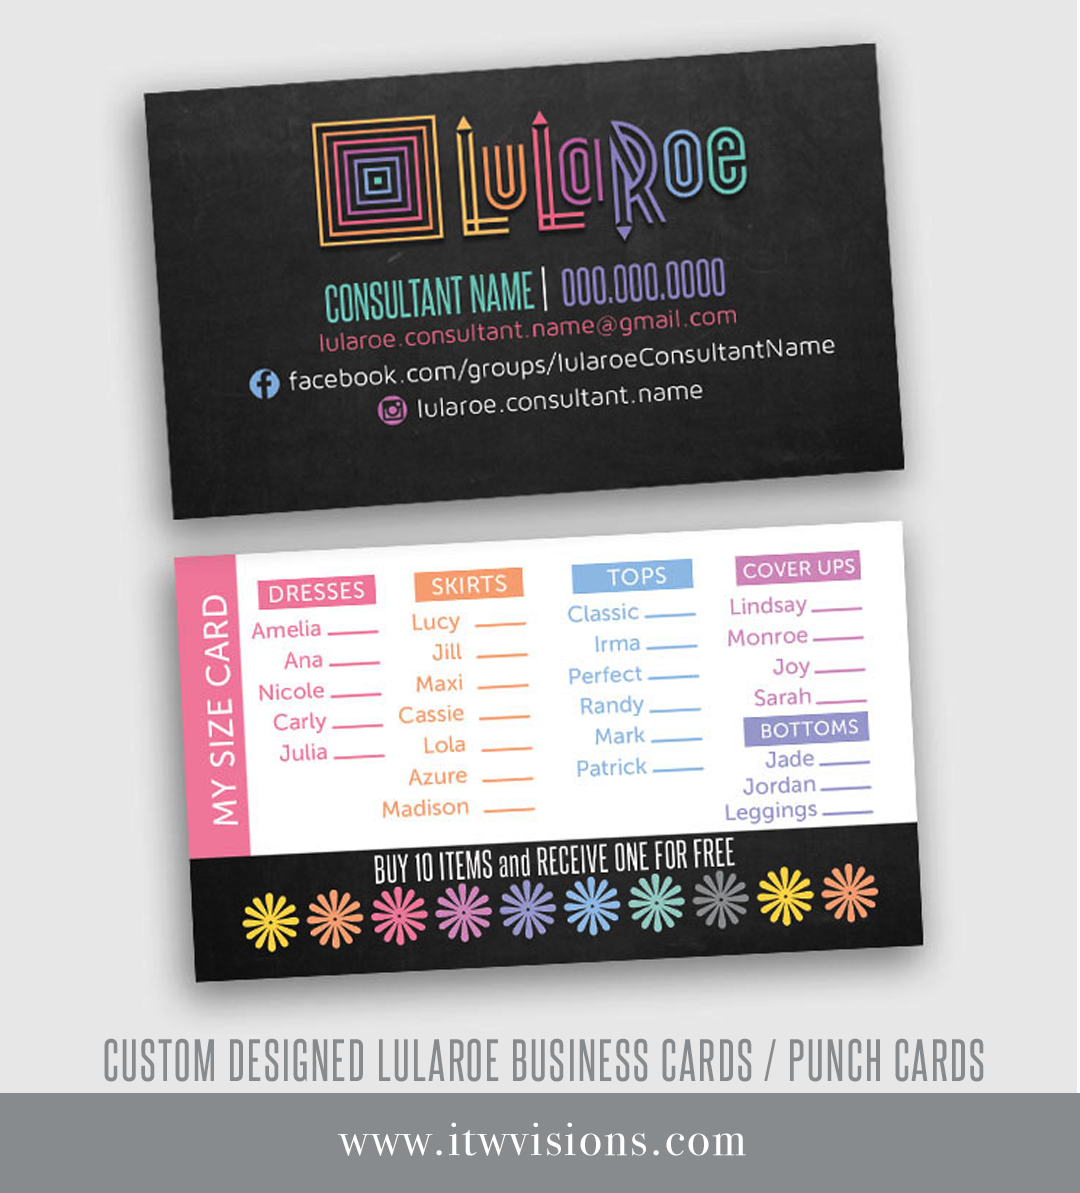 Lularoe business card my size card punch card lula roe these adorable chalkboard background business card punch card my size card are perfect for magicingreecefo Images